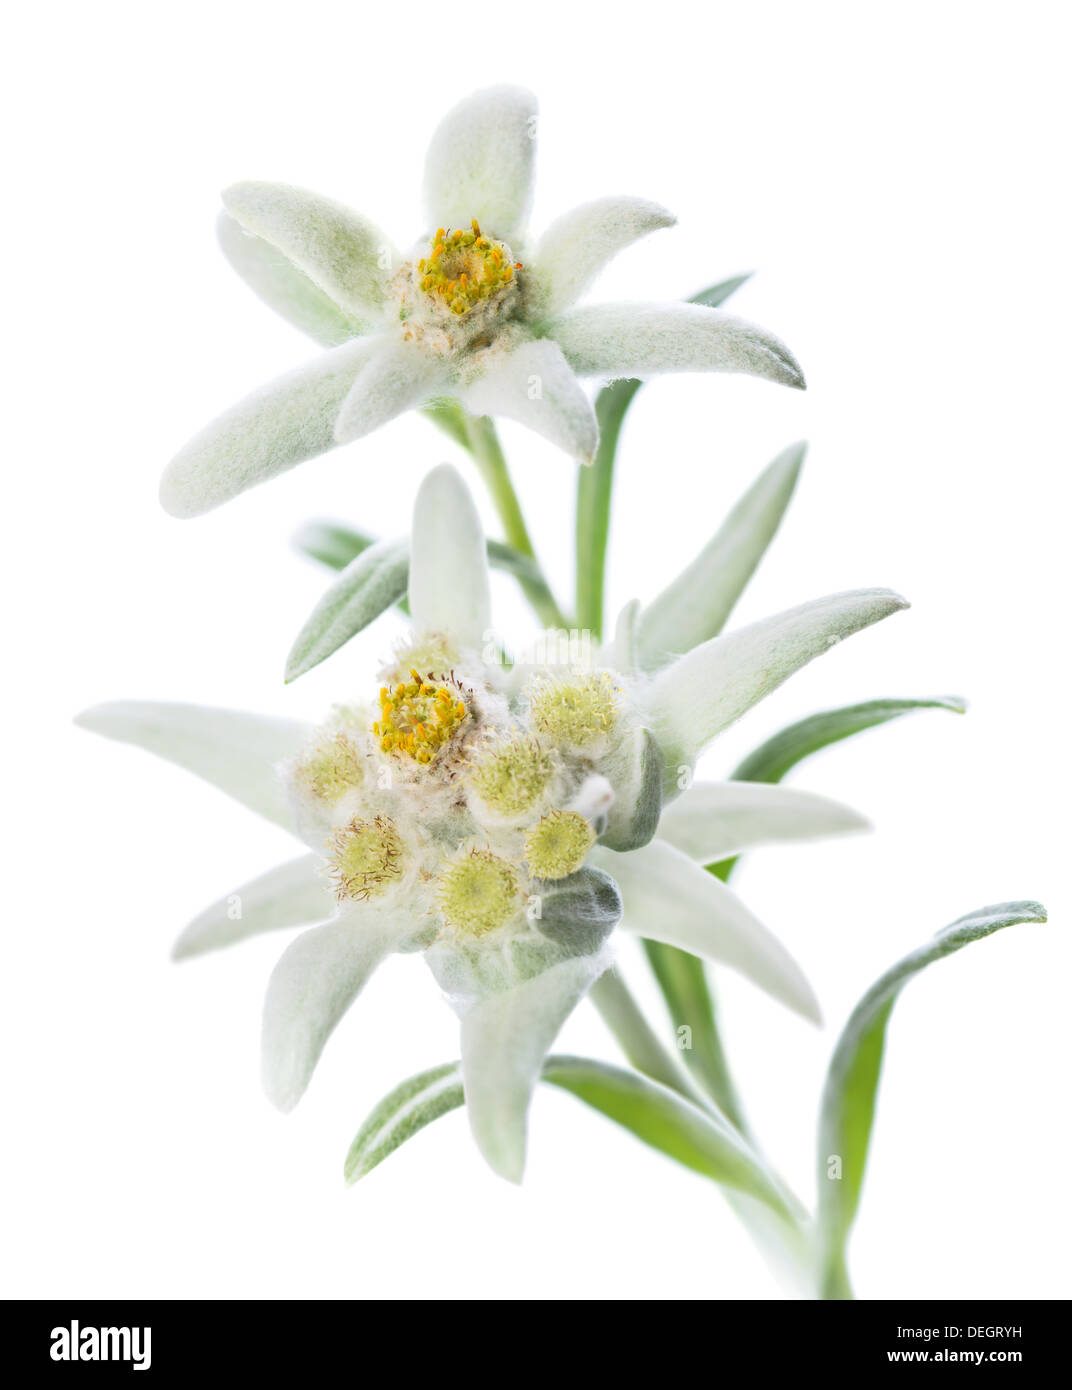 Edelweiss flowers stock photos edelweiss flowers stock images alamy two edelweiss flowers leontopodium alpinum isolated over white stock image mightylinksfo